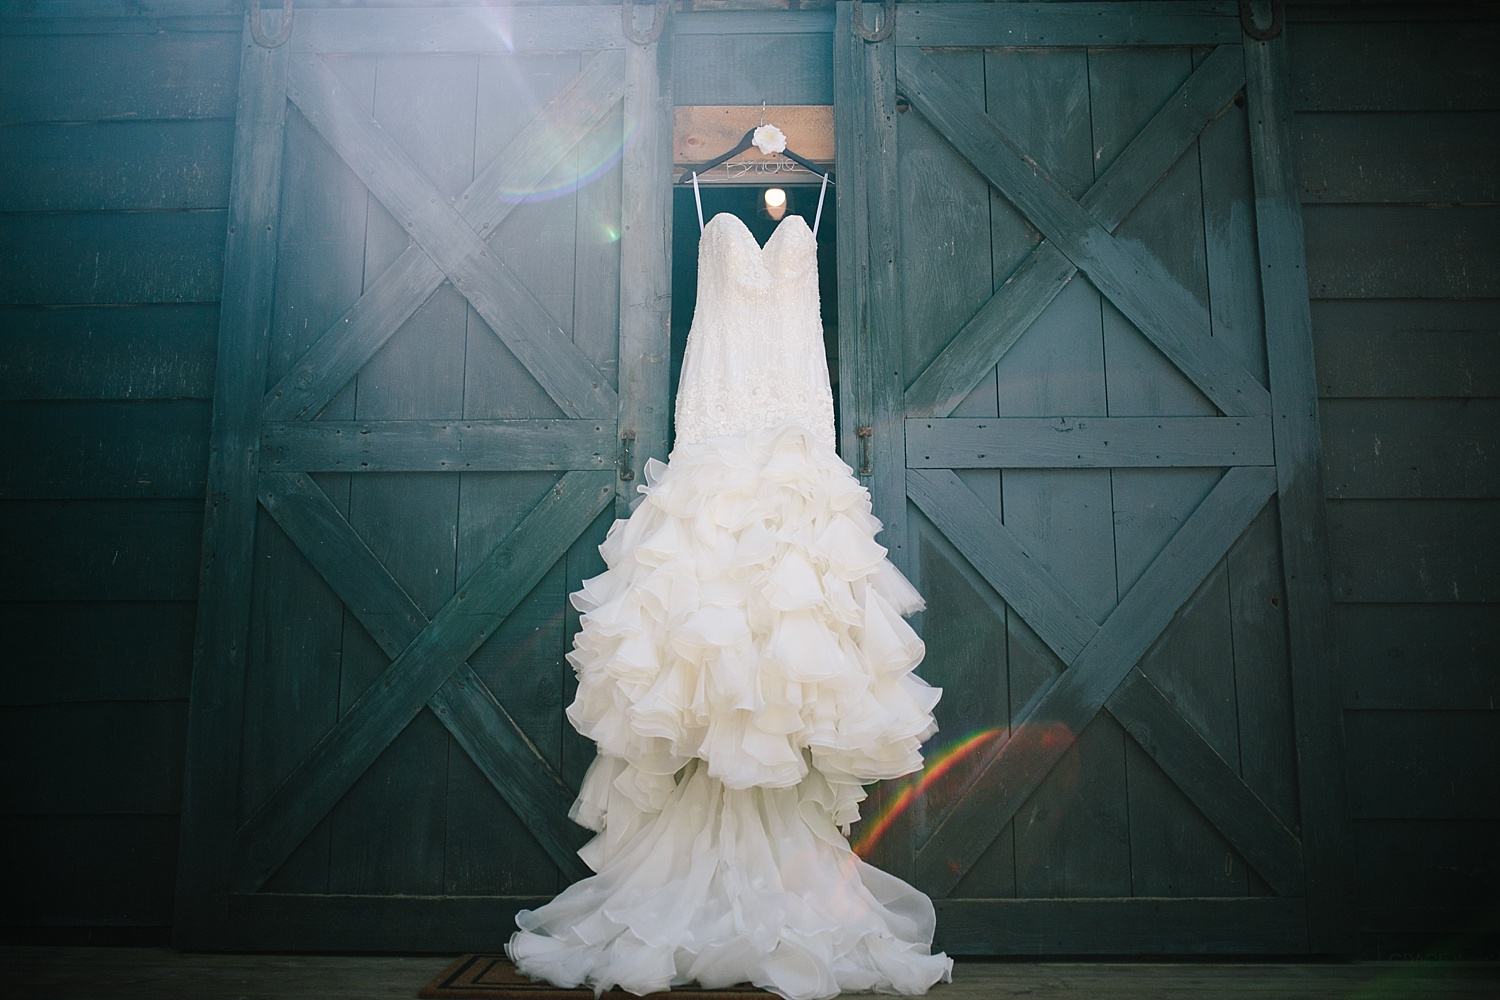 jennyryan_newbeginnings_farmstead_upstatenewyork_wedding_image015.jpg